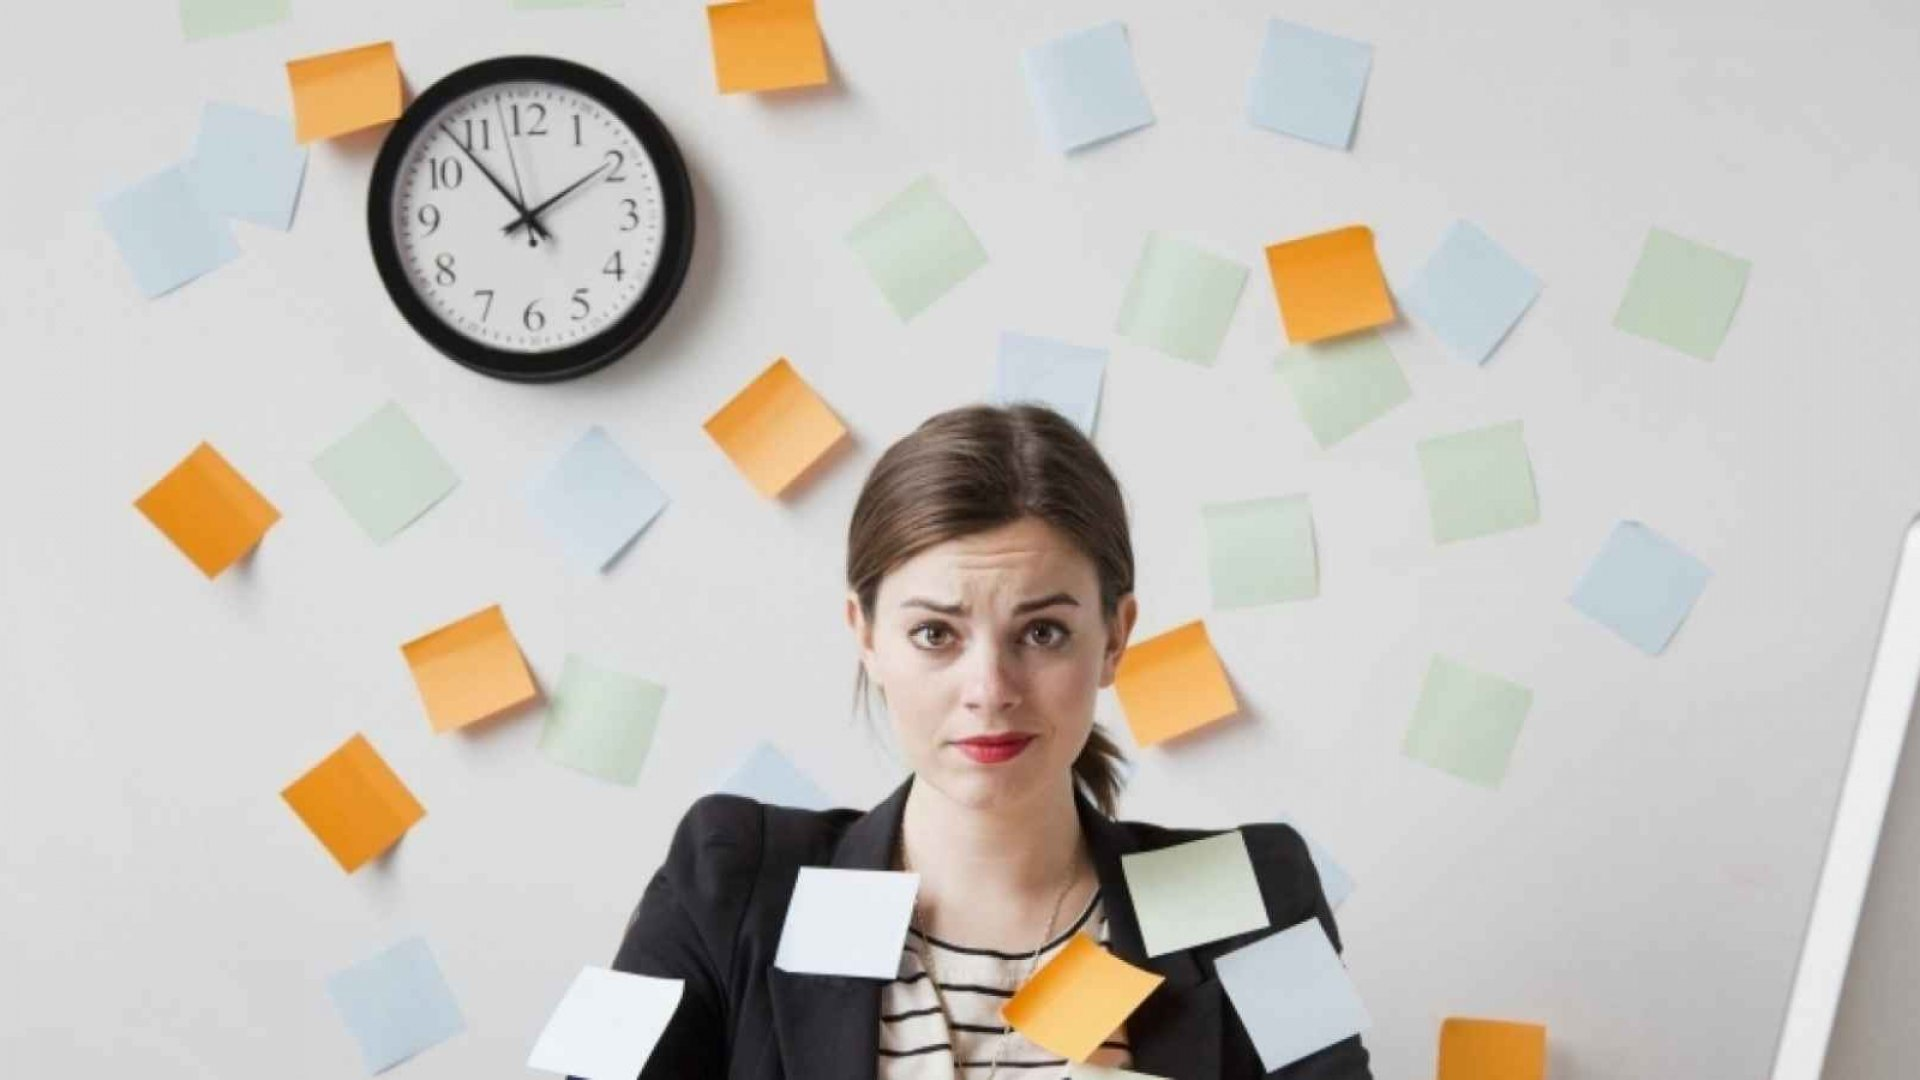 Positive Coping Strategies to Combat Workplace Stress